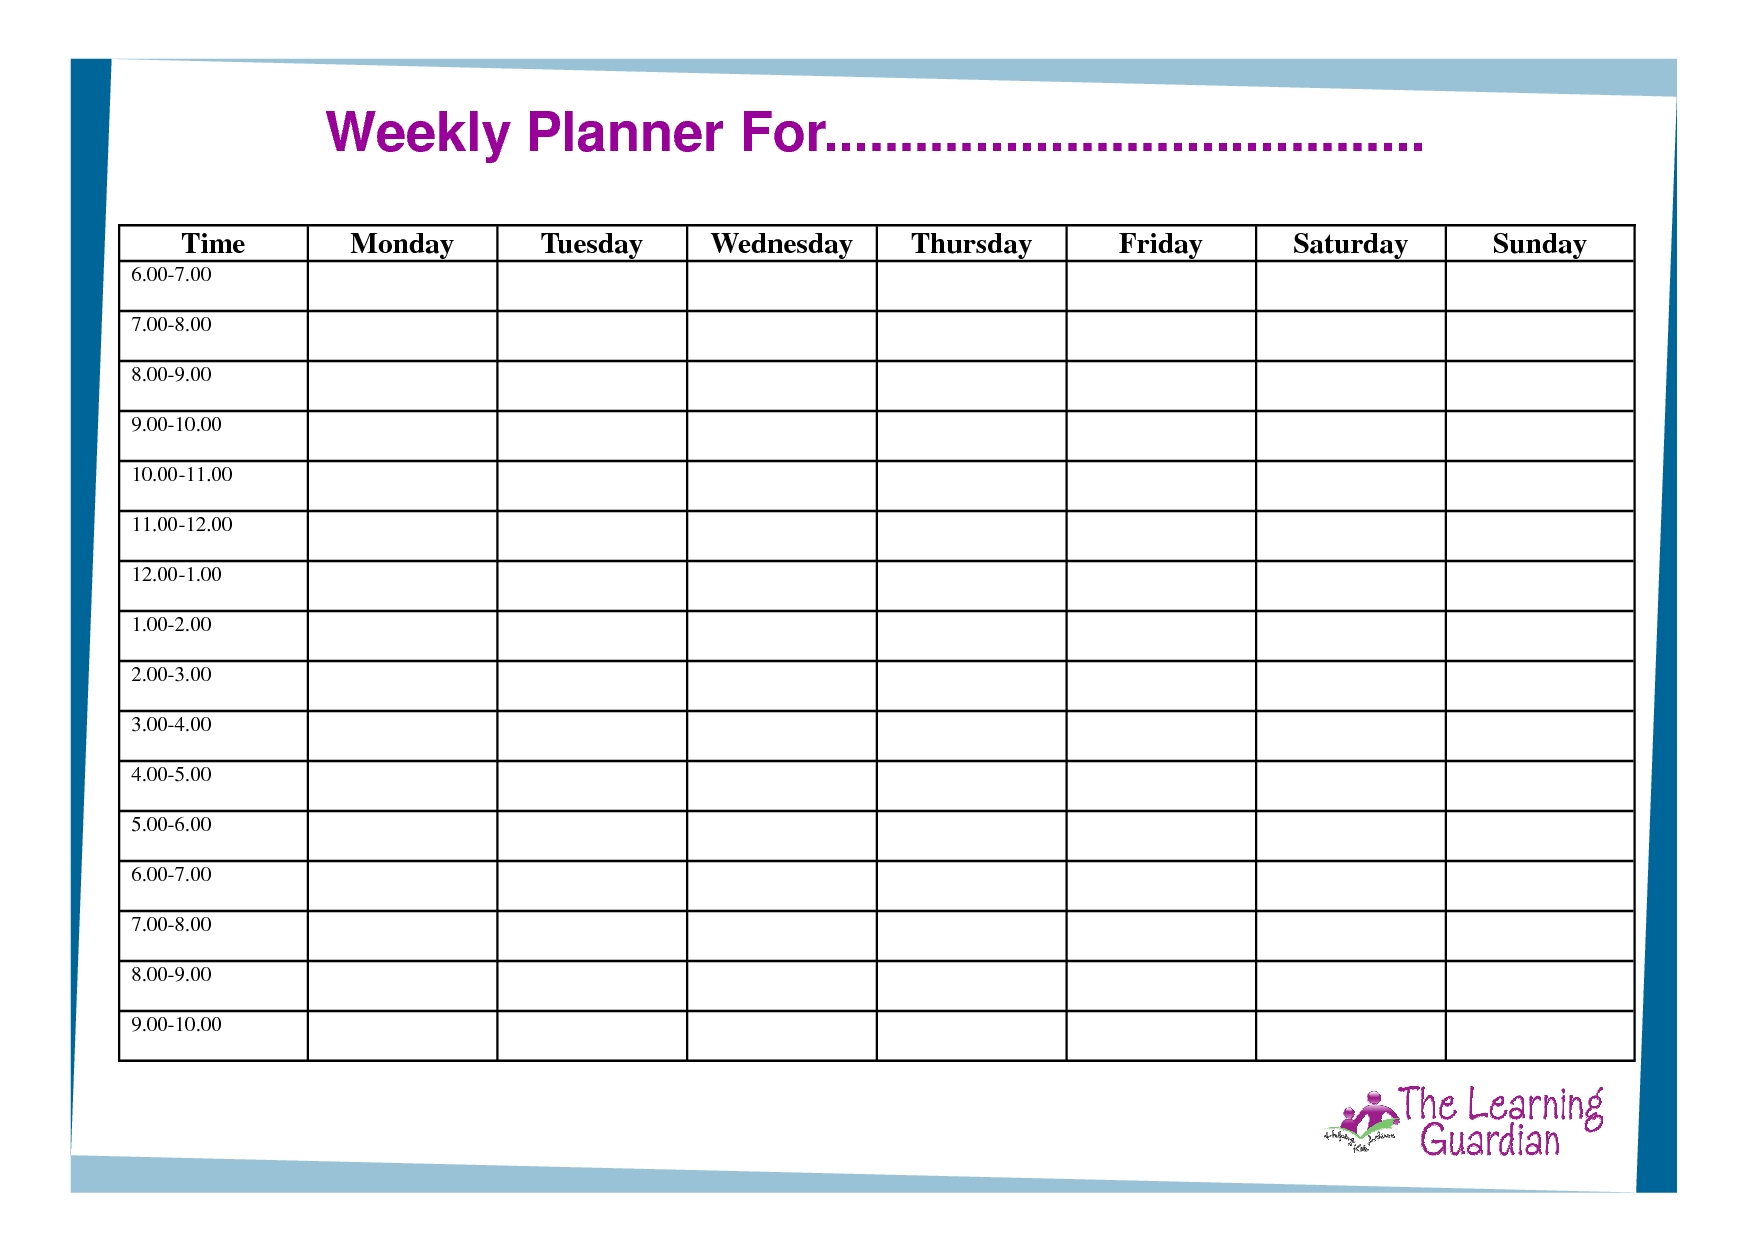 Free Printable Weekly Calendar Templates | Weekly Planner For Time throughout Blank Calendar Template Monday Friday